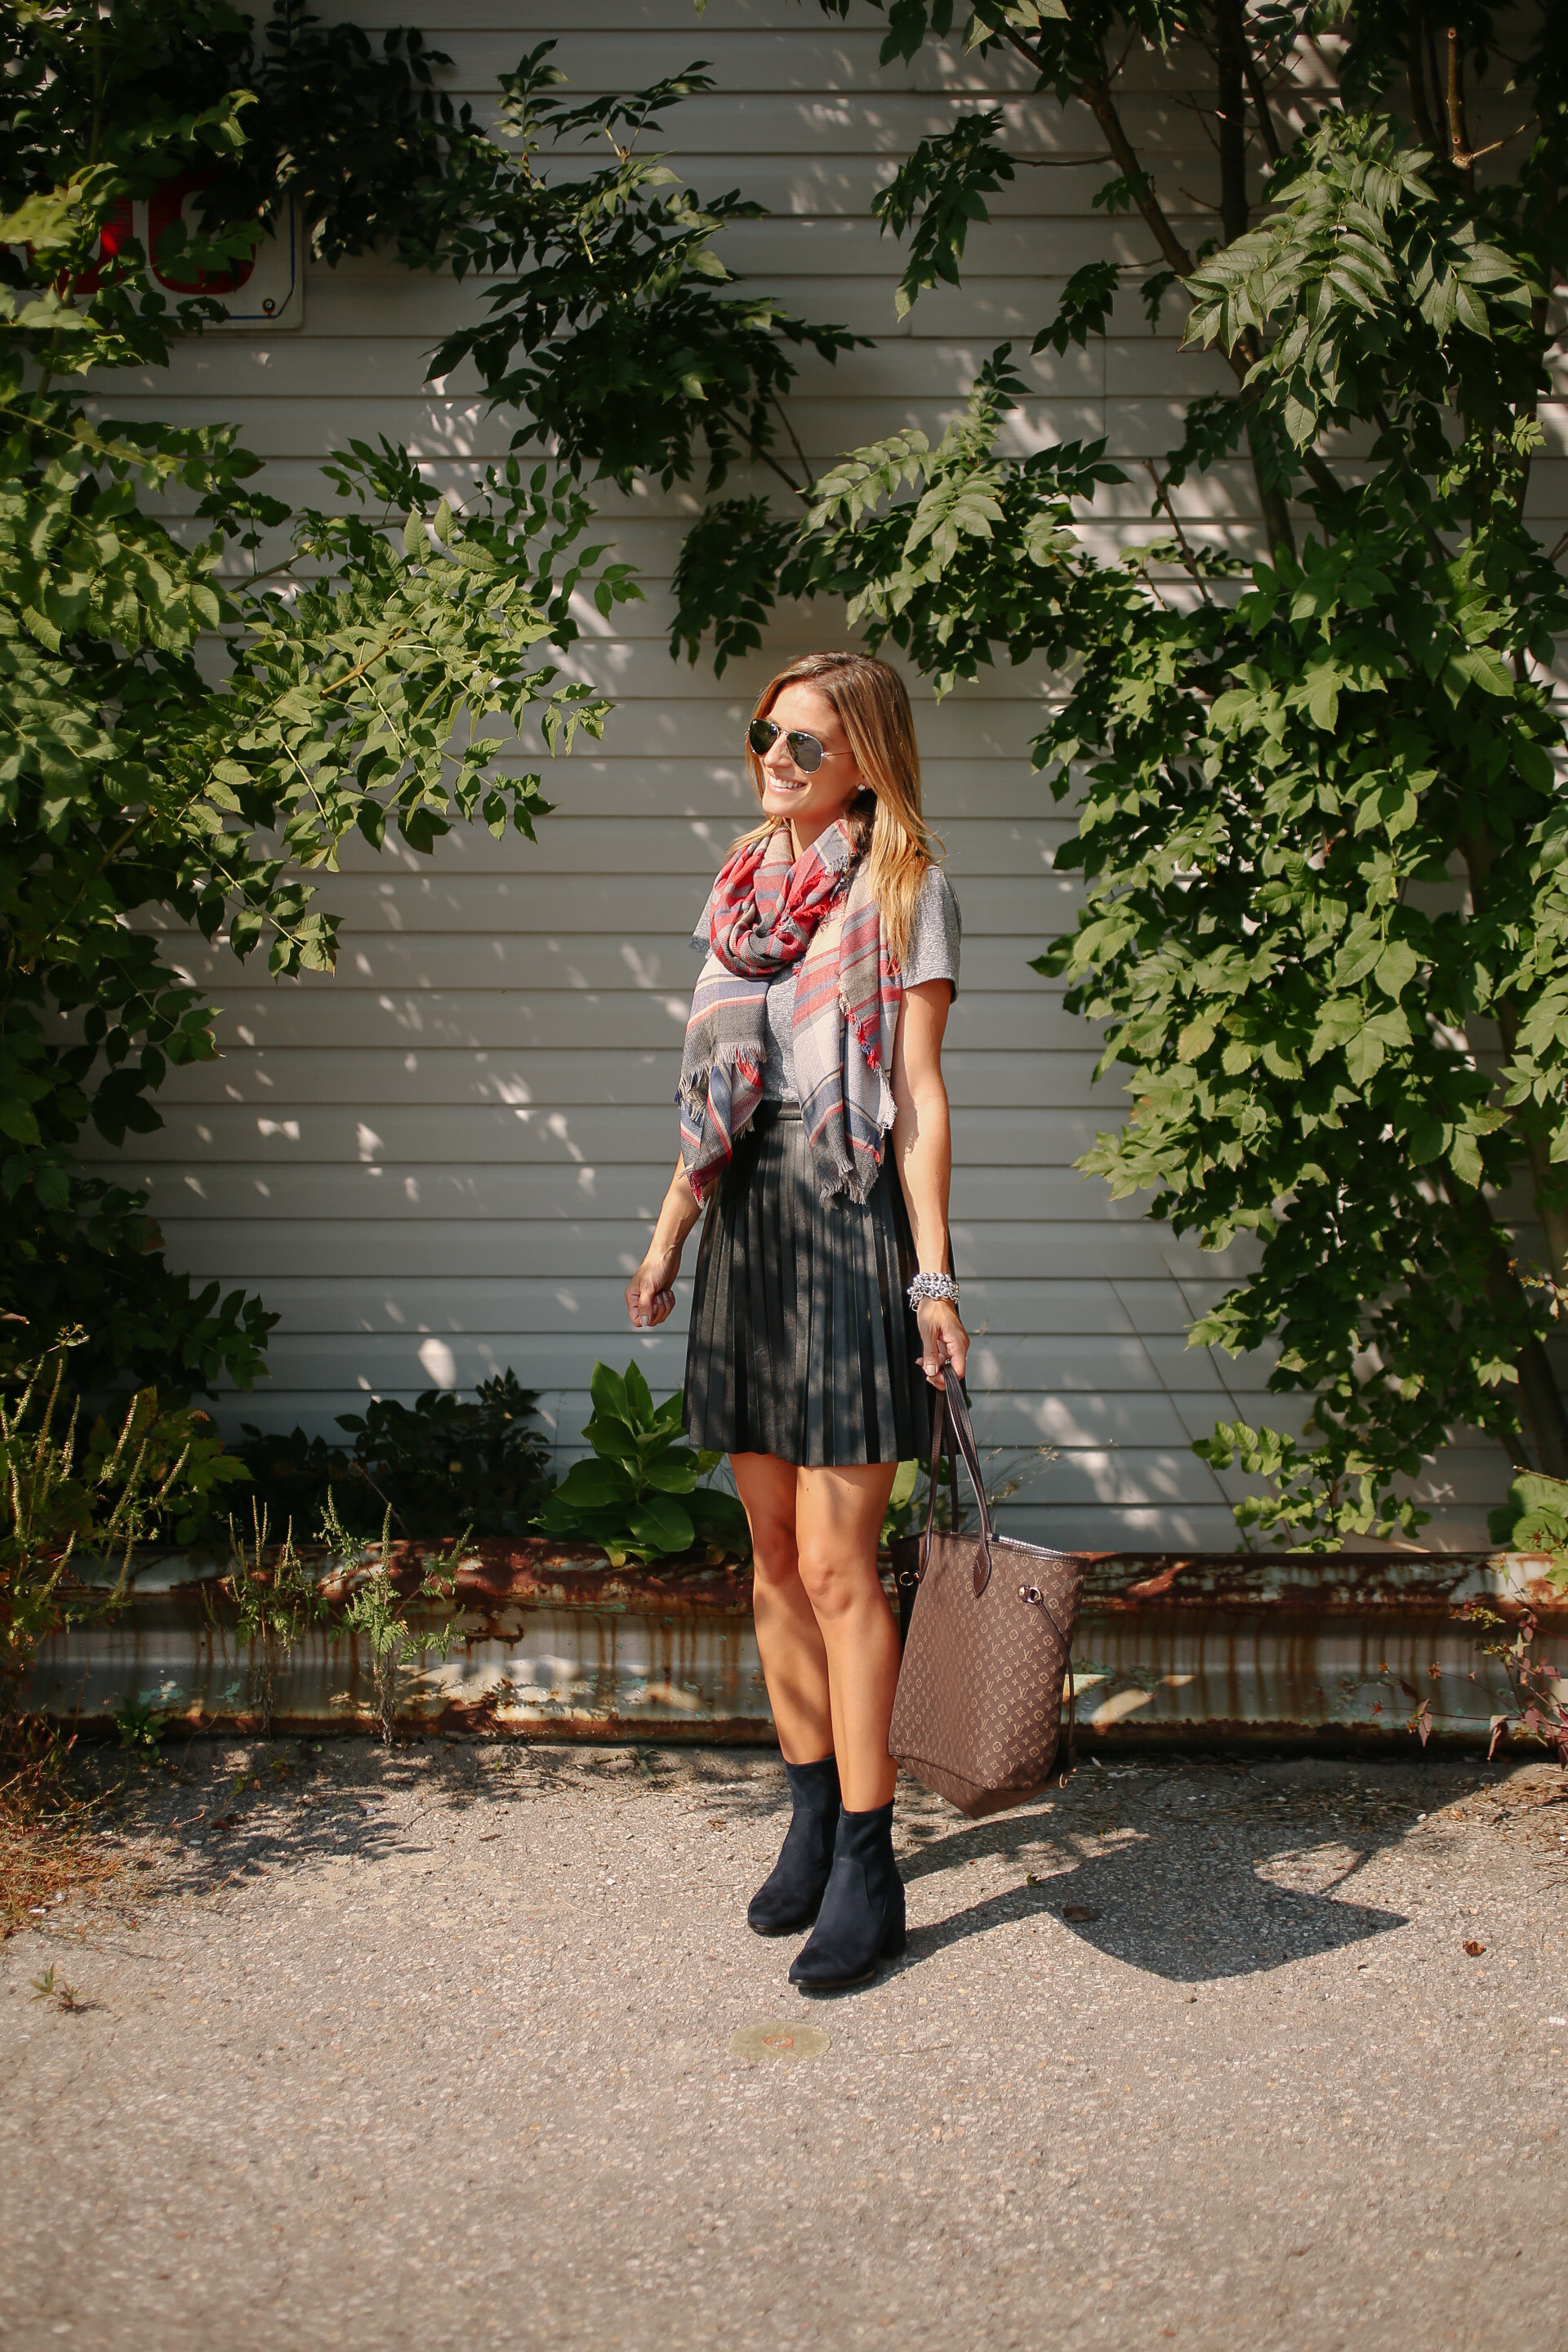 fall look with booties, leather skirt, t-shirt and plaid scarf